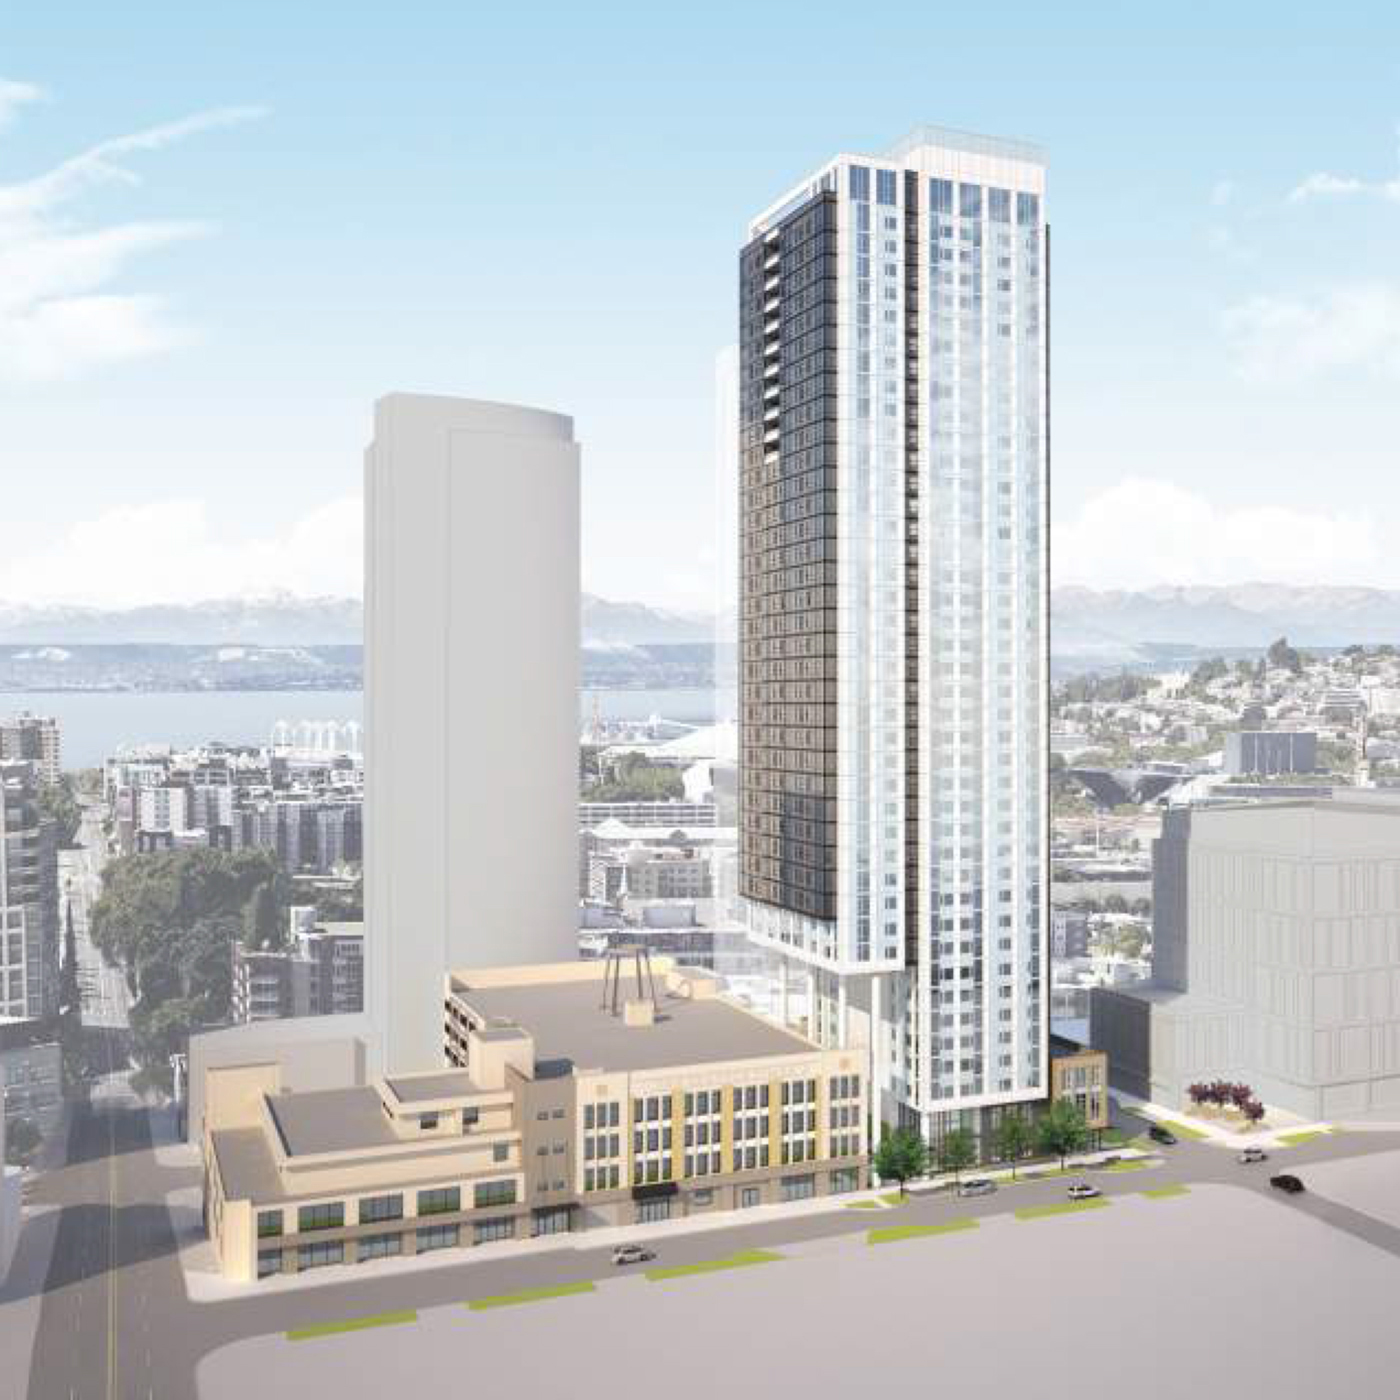 Dual 24 Story Apartment Towers Debut At 8th Spring: Seattle DJC.com Local Business News And Data